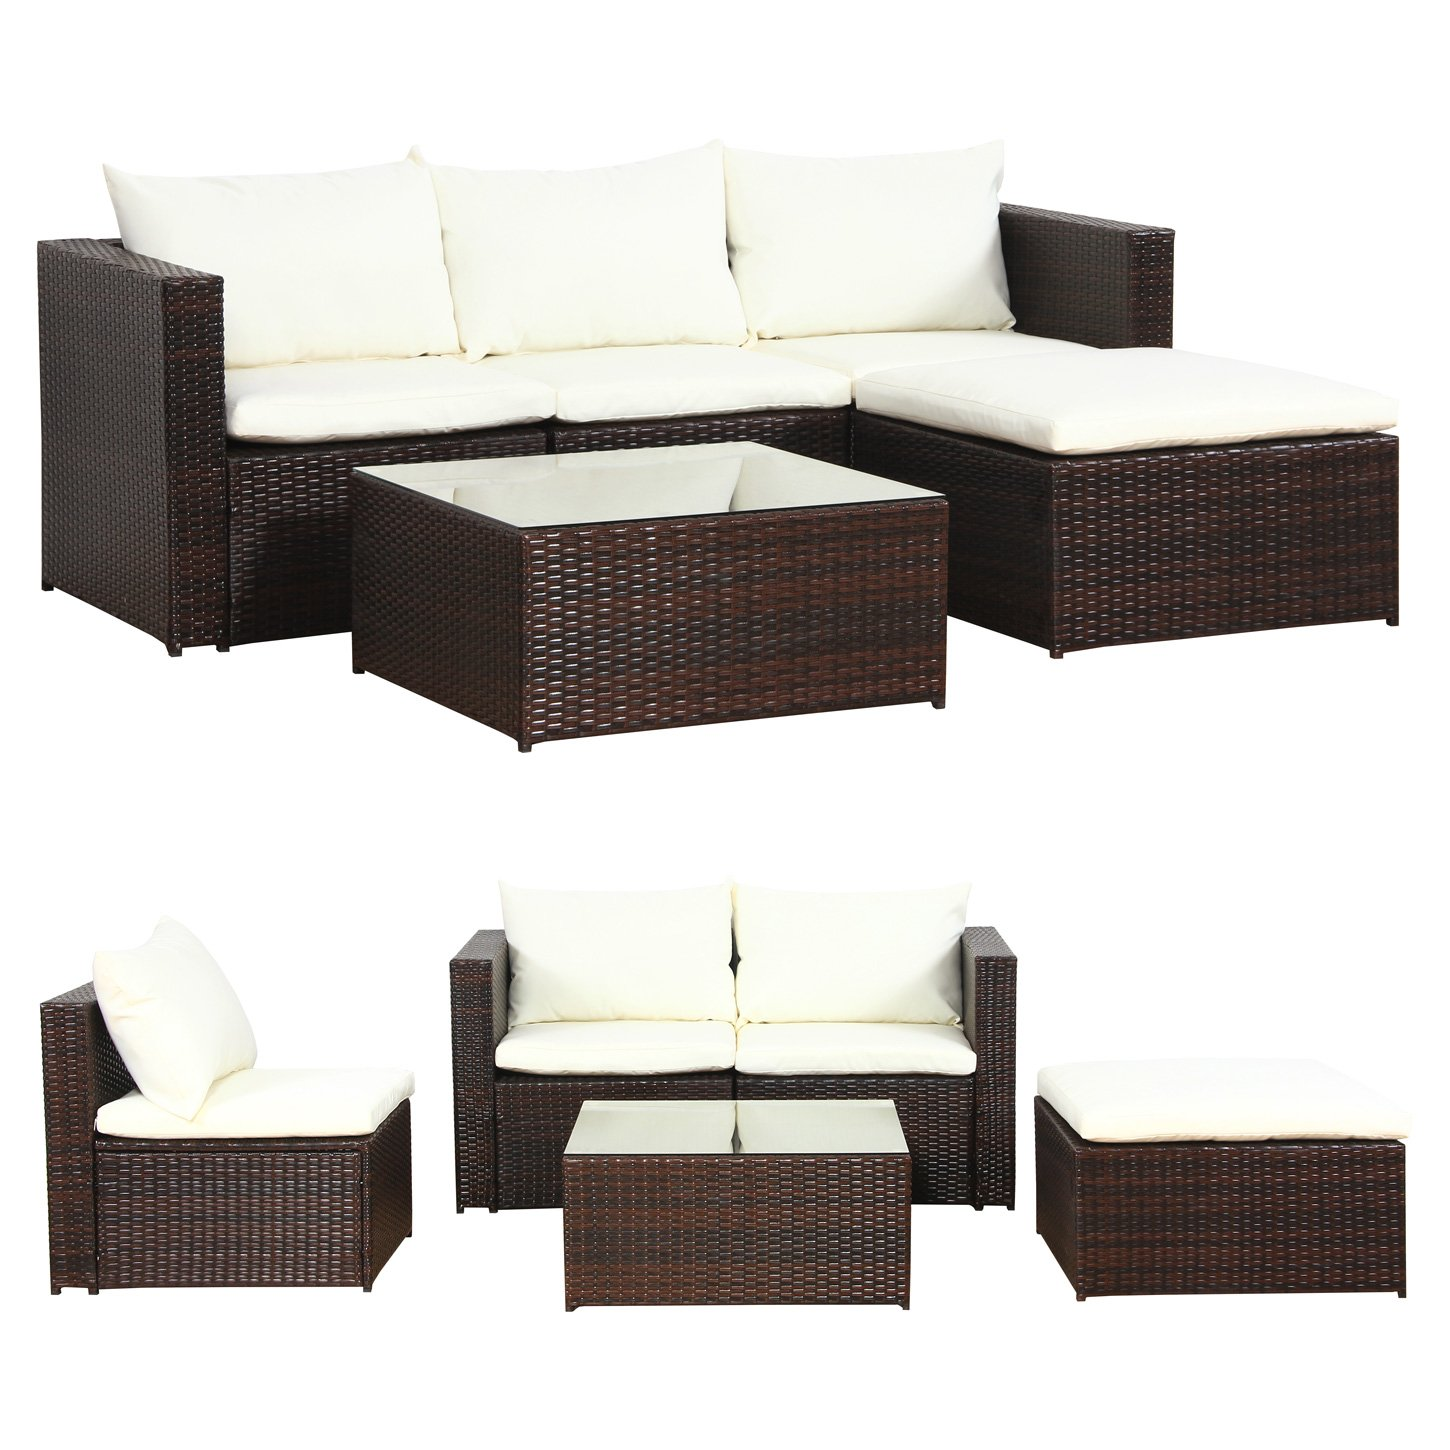 malaga poly rattan braun gartenm bel sitzgruppe. Black Bedroom Furniture Sets. Home Design Ideas